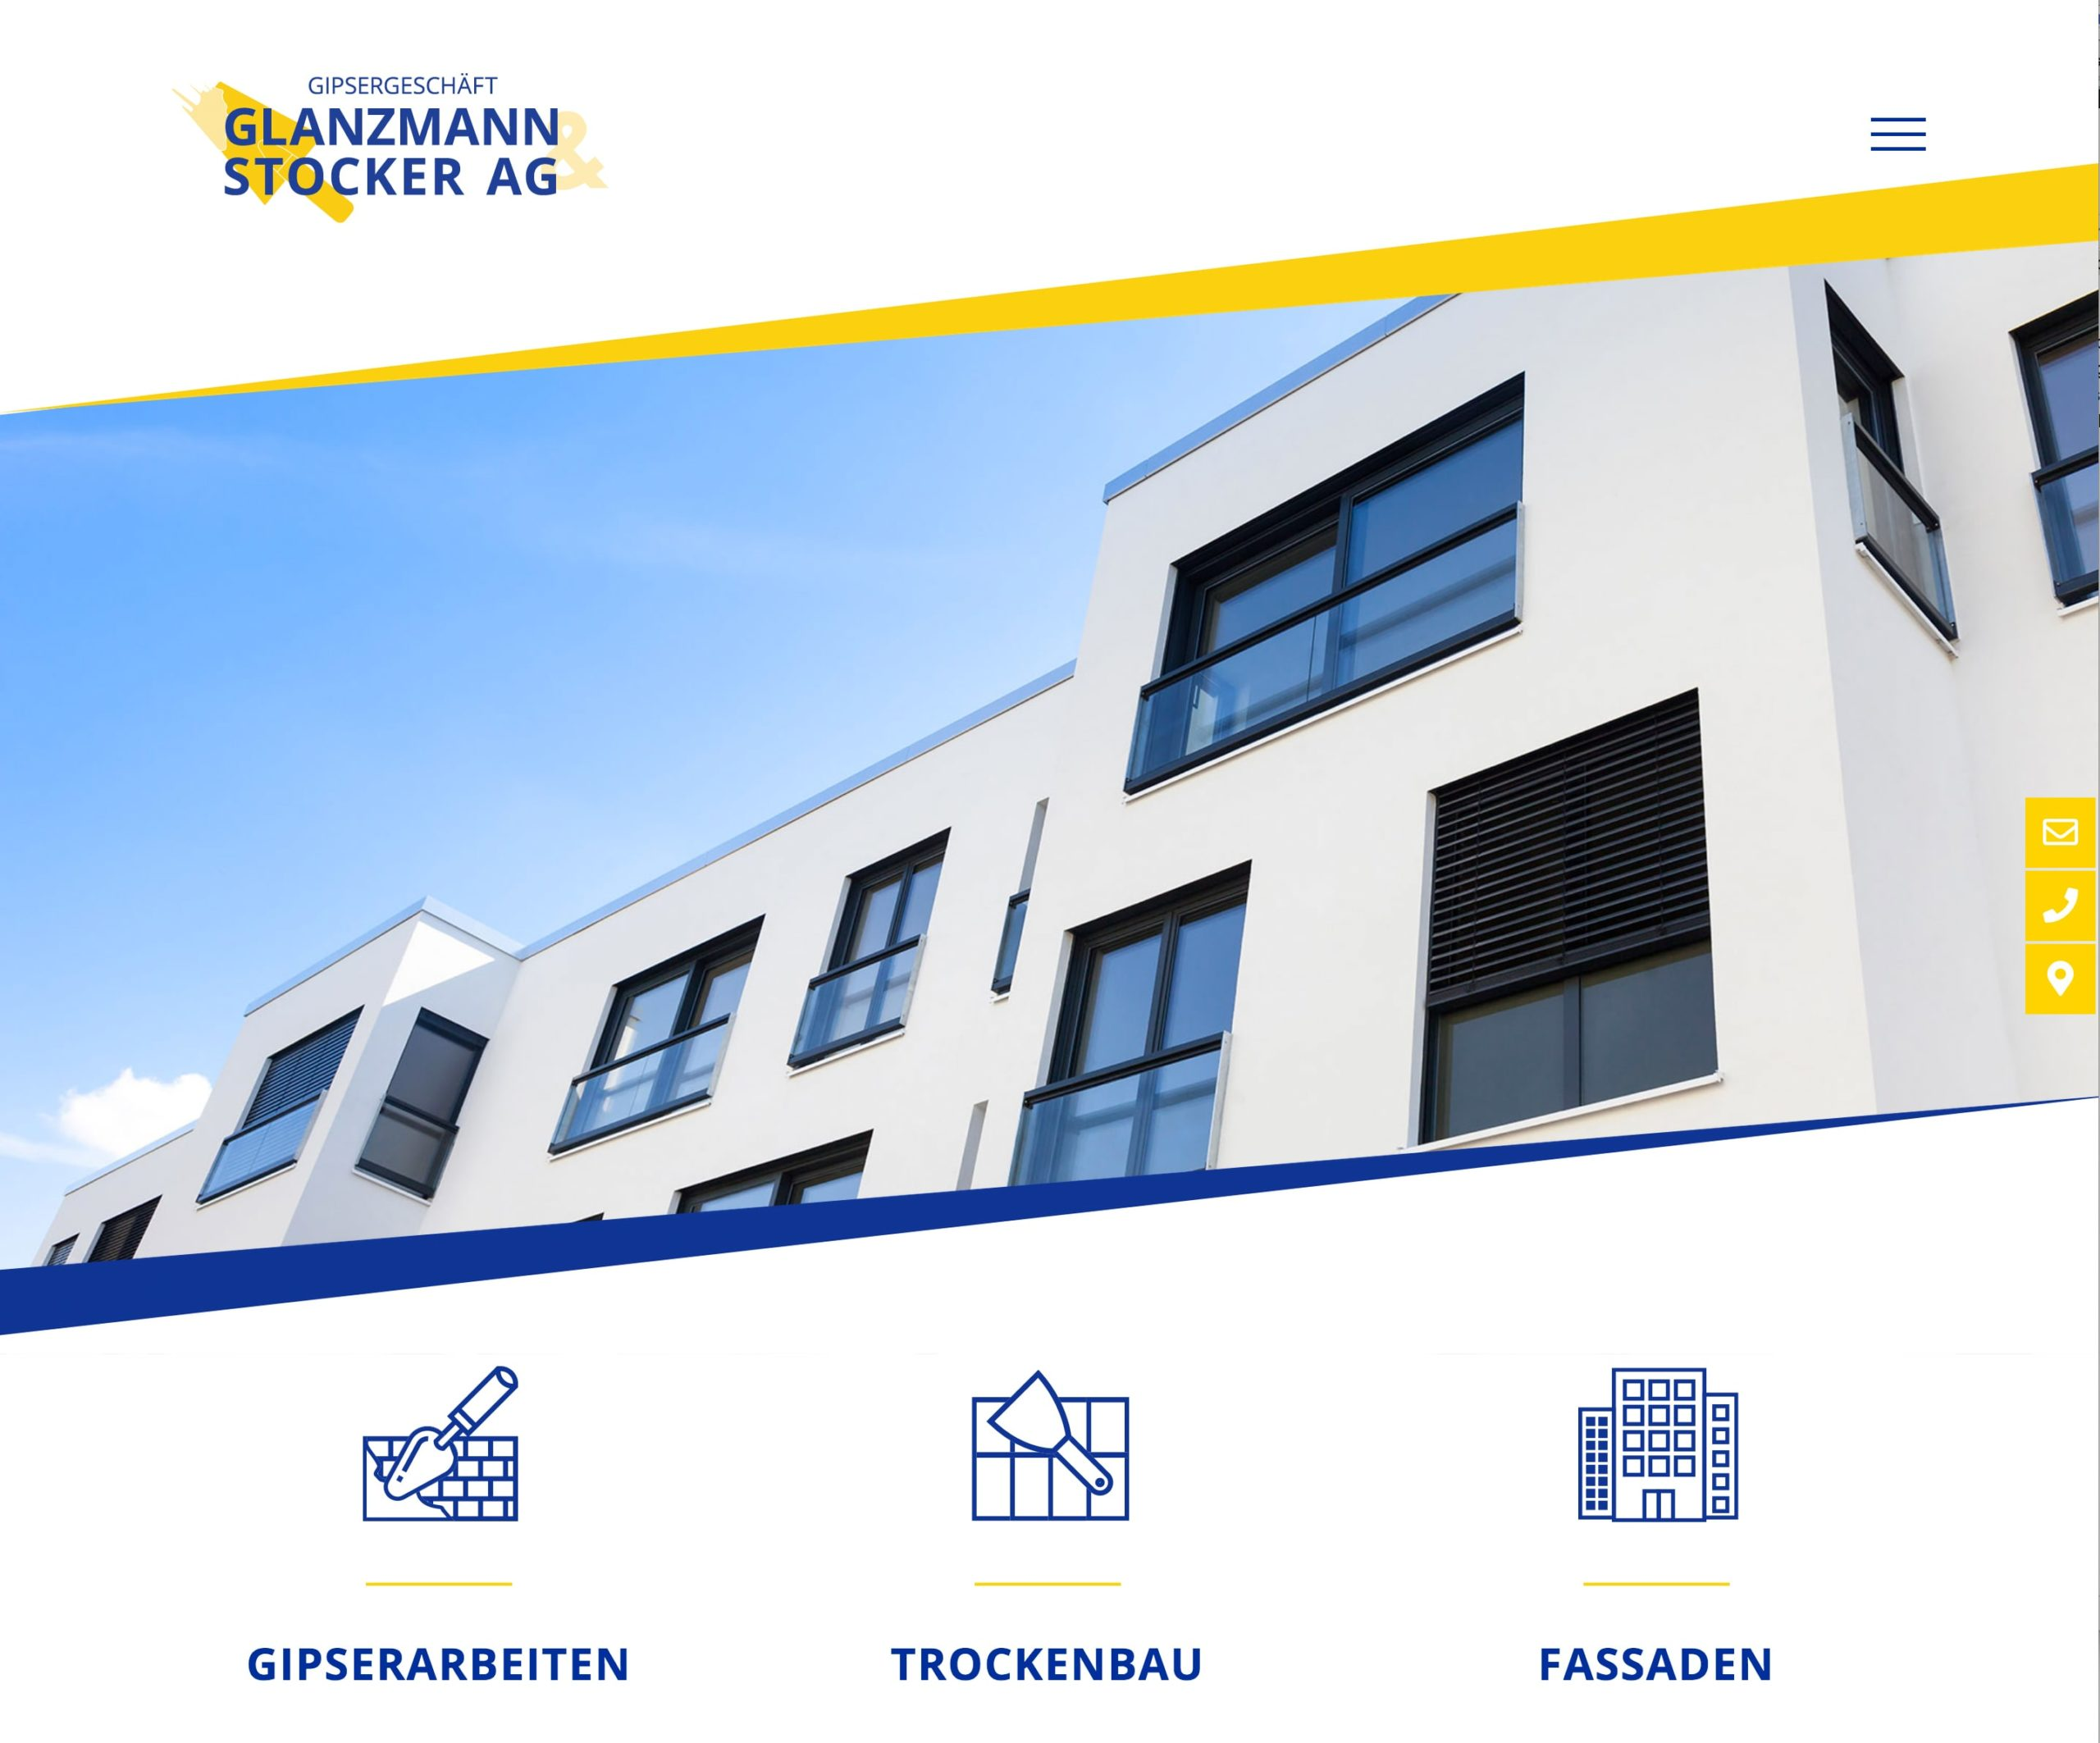 https://conseo.ch/referenz/glanzmann-stocker-ag/